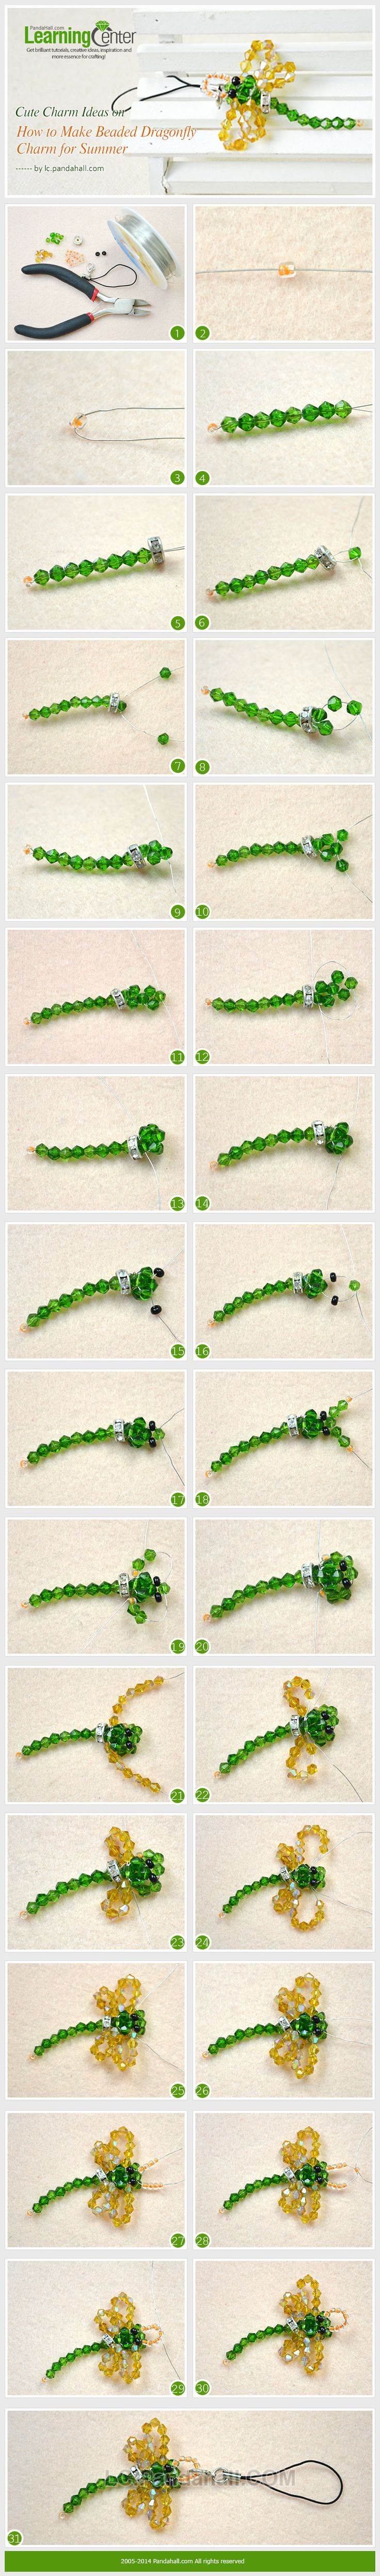 Cute Charm Ideas on How to Make Beaded Dragonfly Charm for Summer